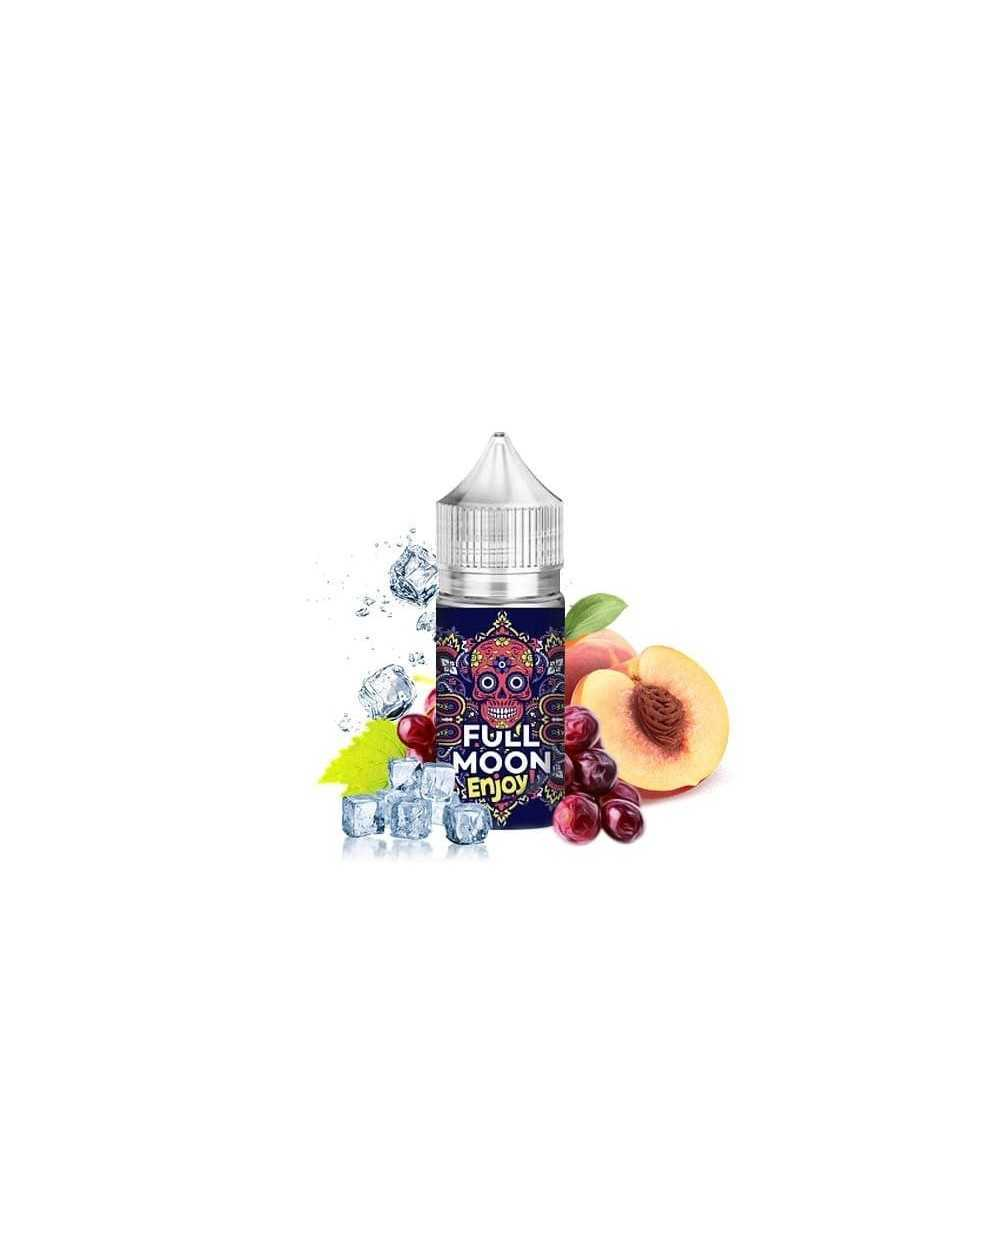 Concentrate Enjoy 30ml - Full Moon